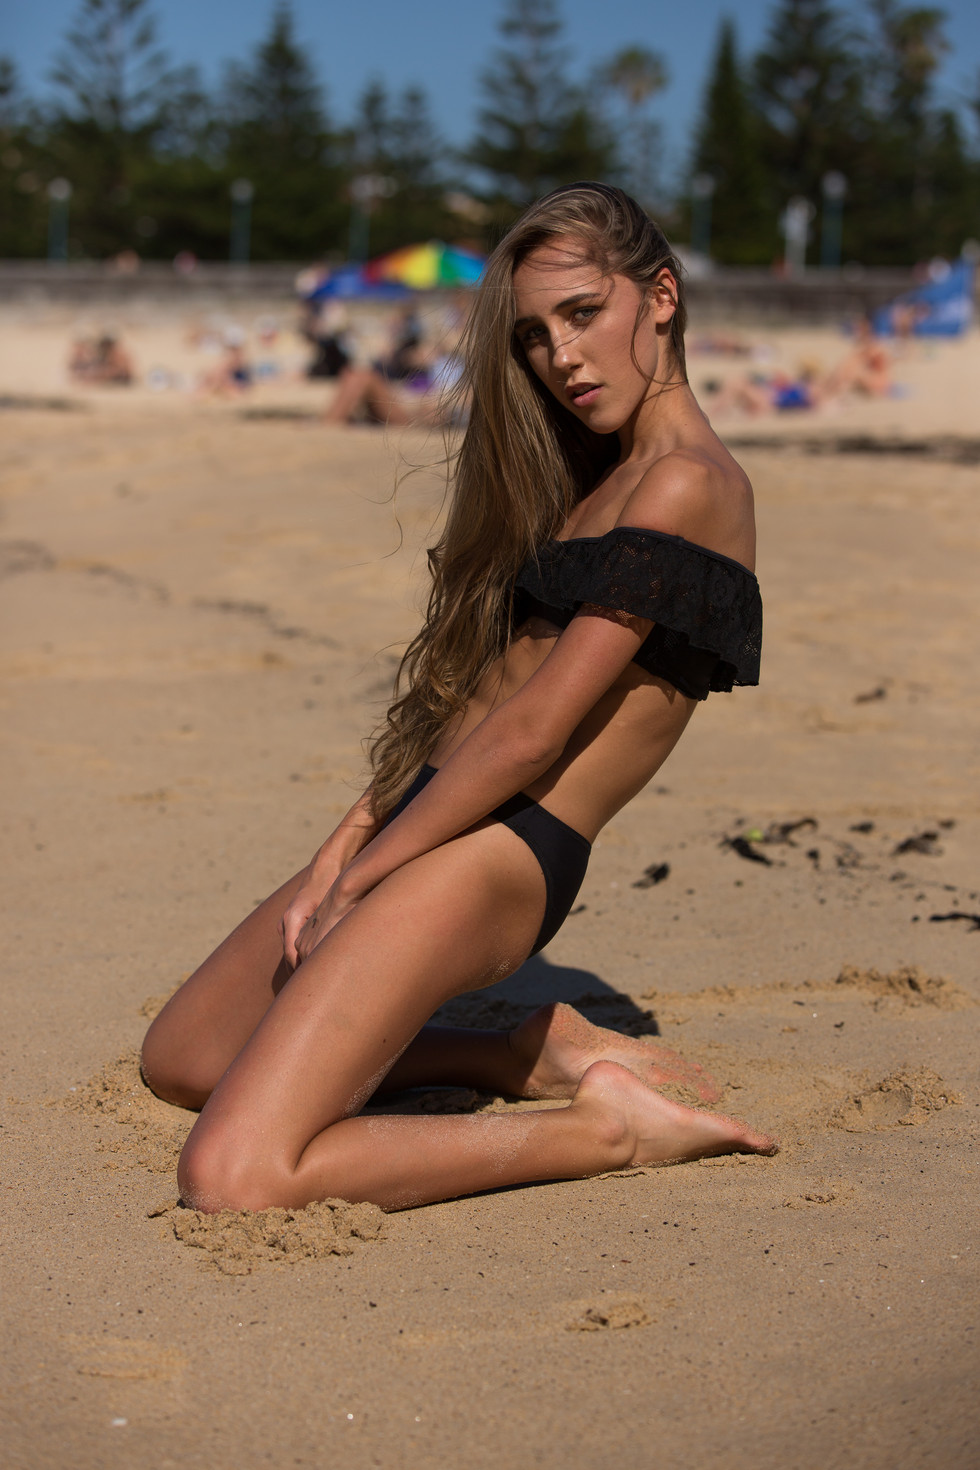 Courtney_by_CoogeePhotography-406630.jpg